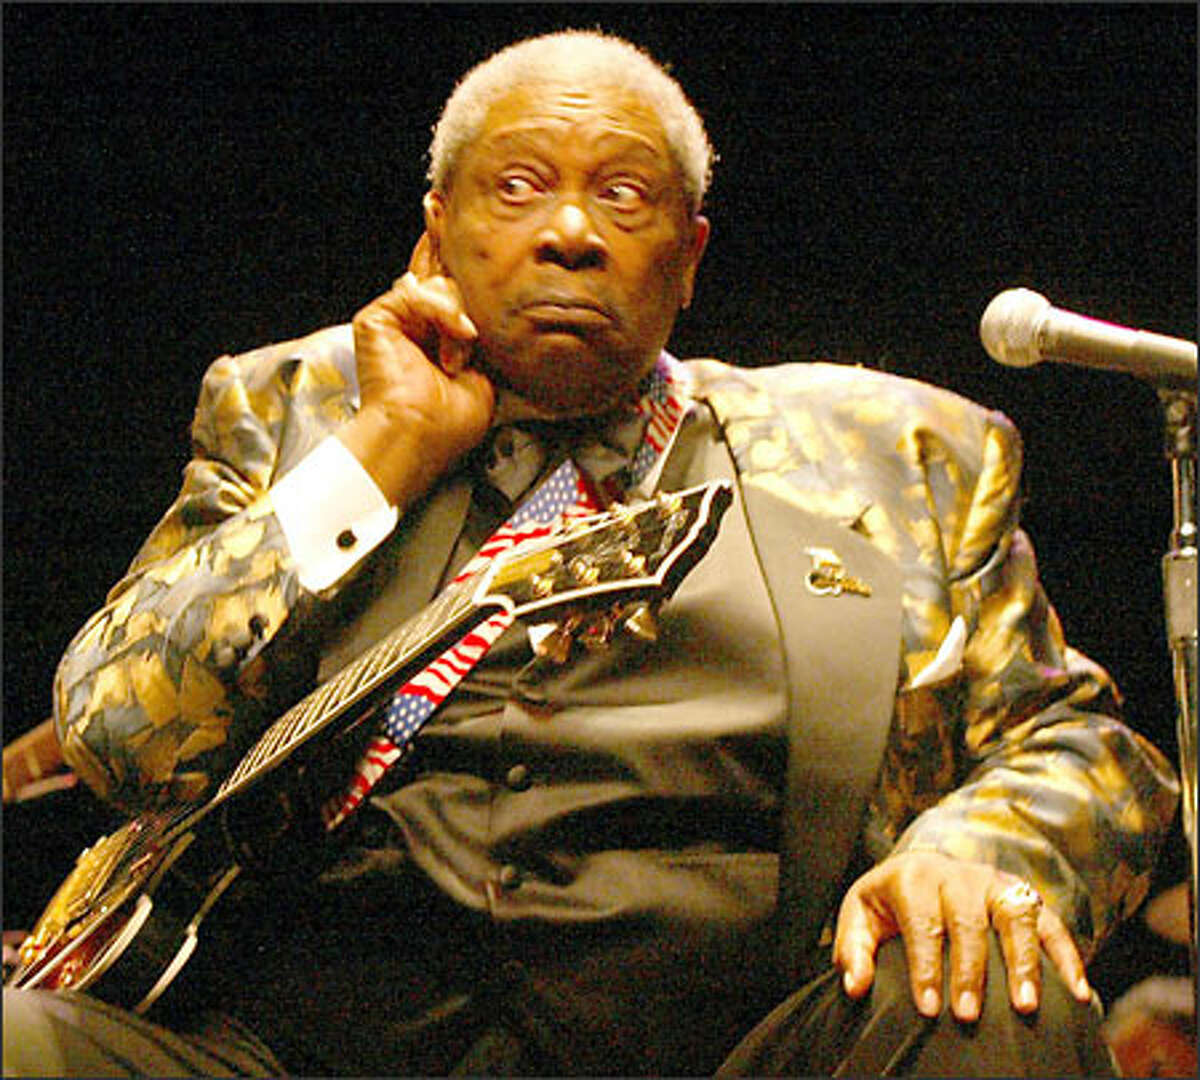 B.B. King, the Mississippi-bred blues legend, pretends he can't hear a lady who yells out